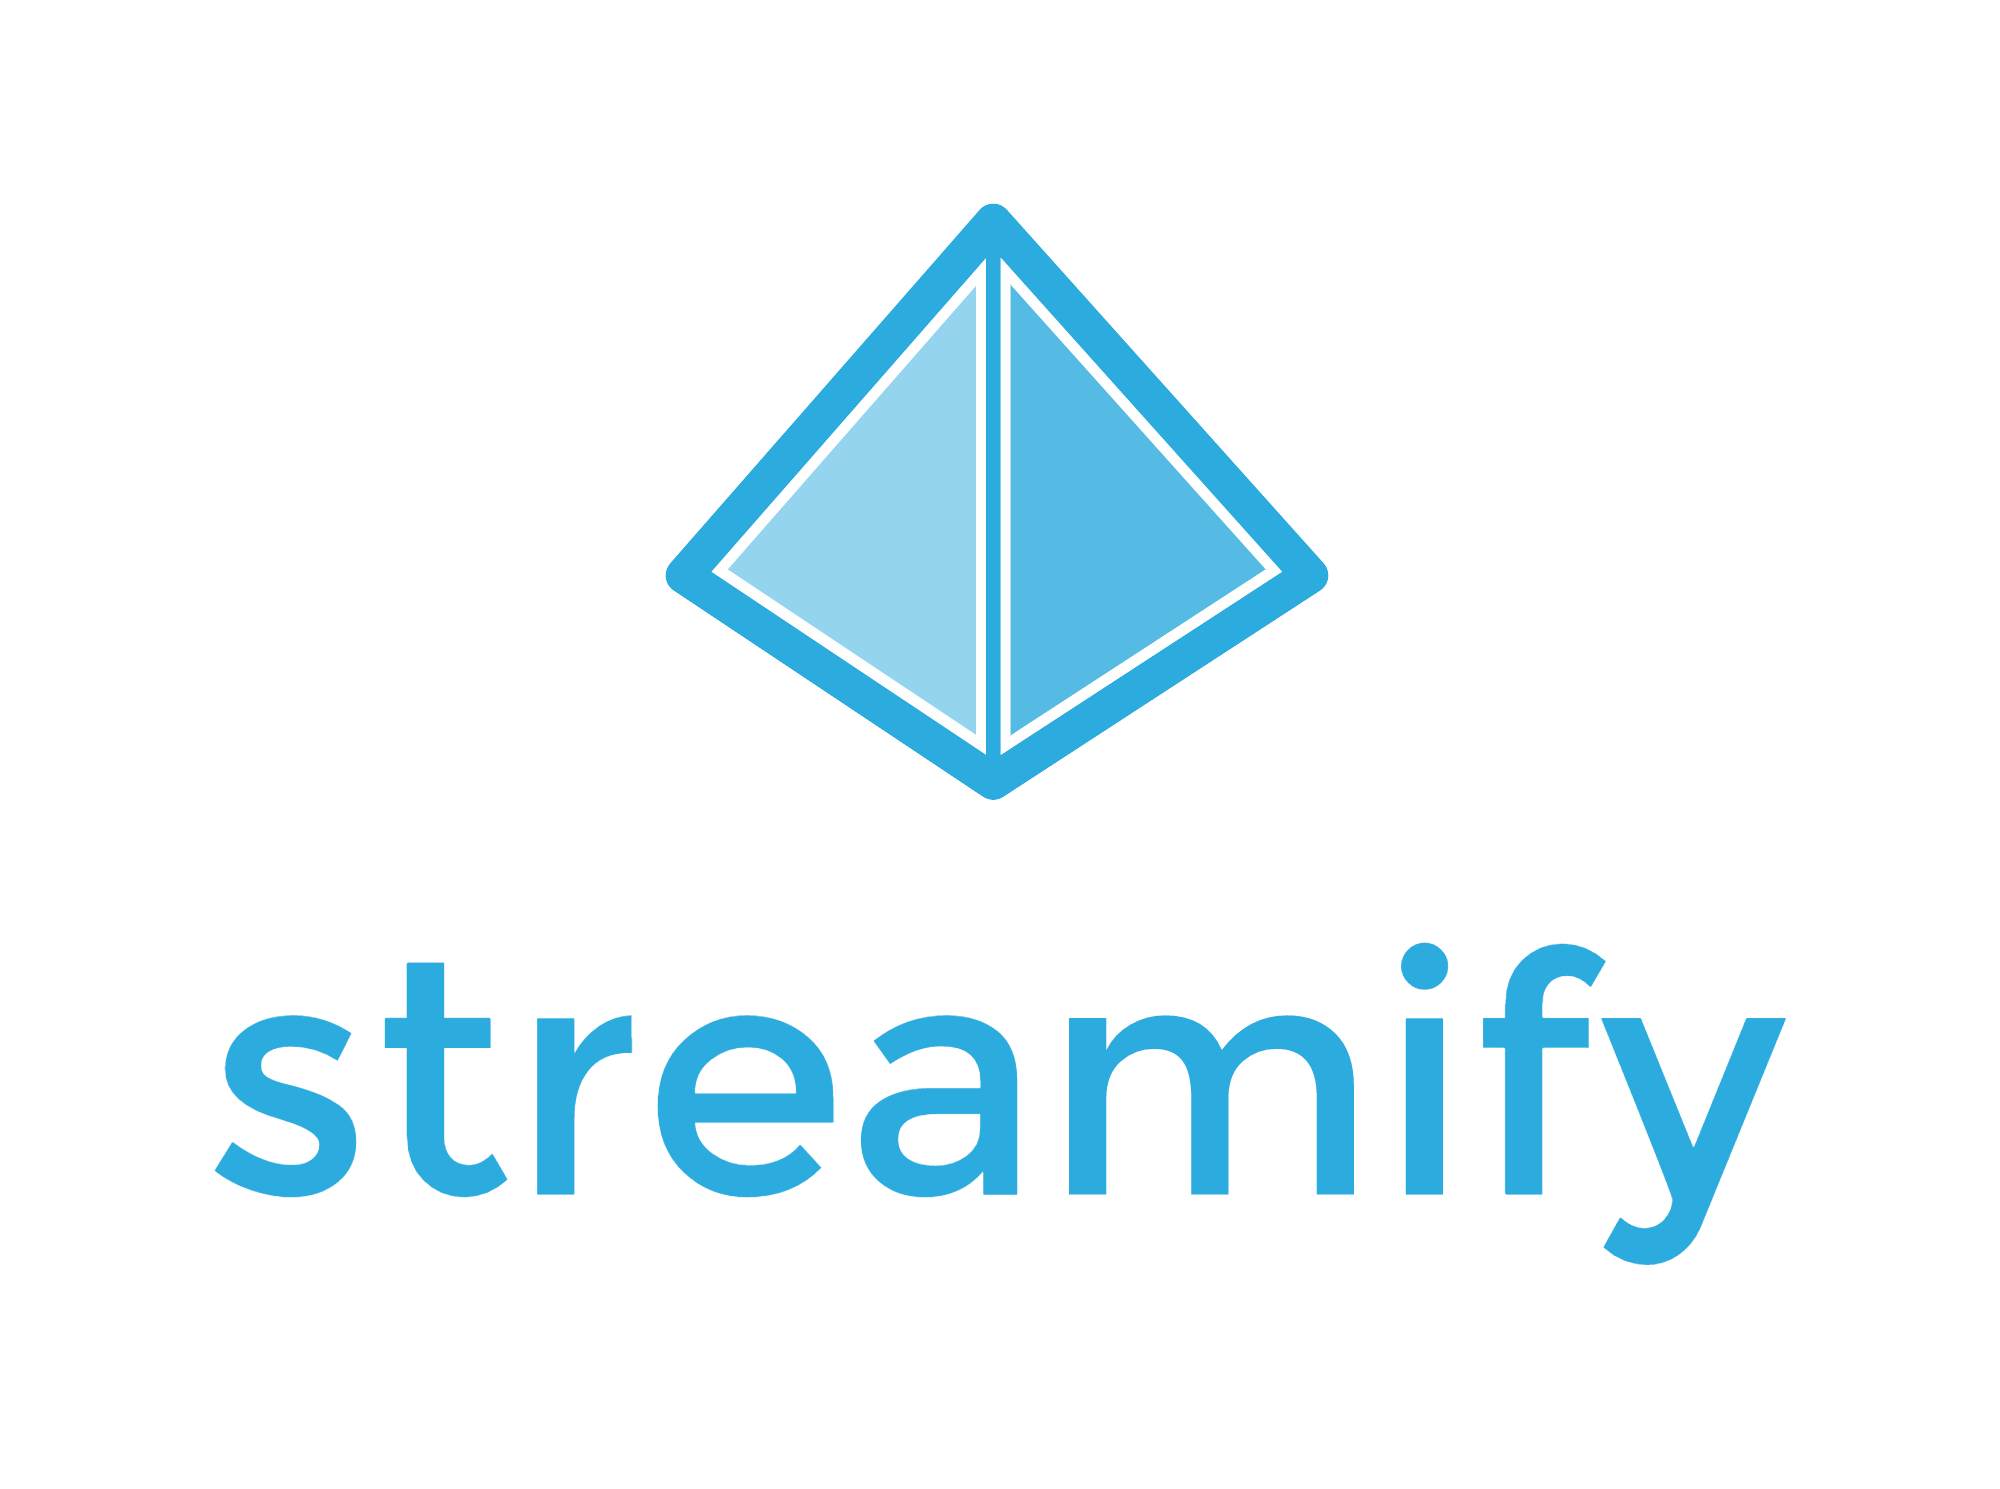 Streamify